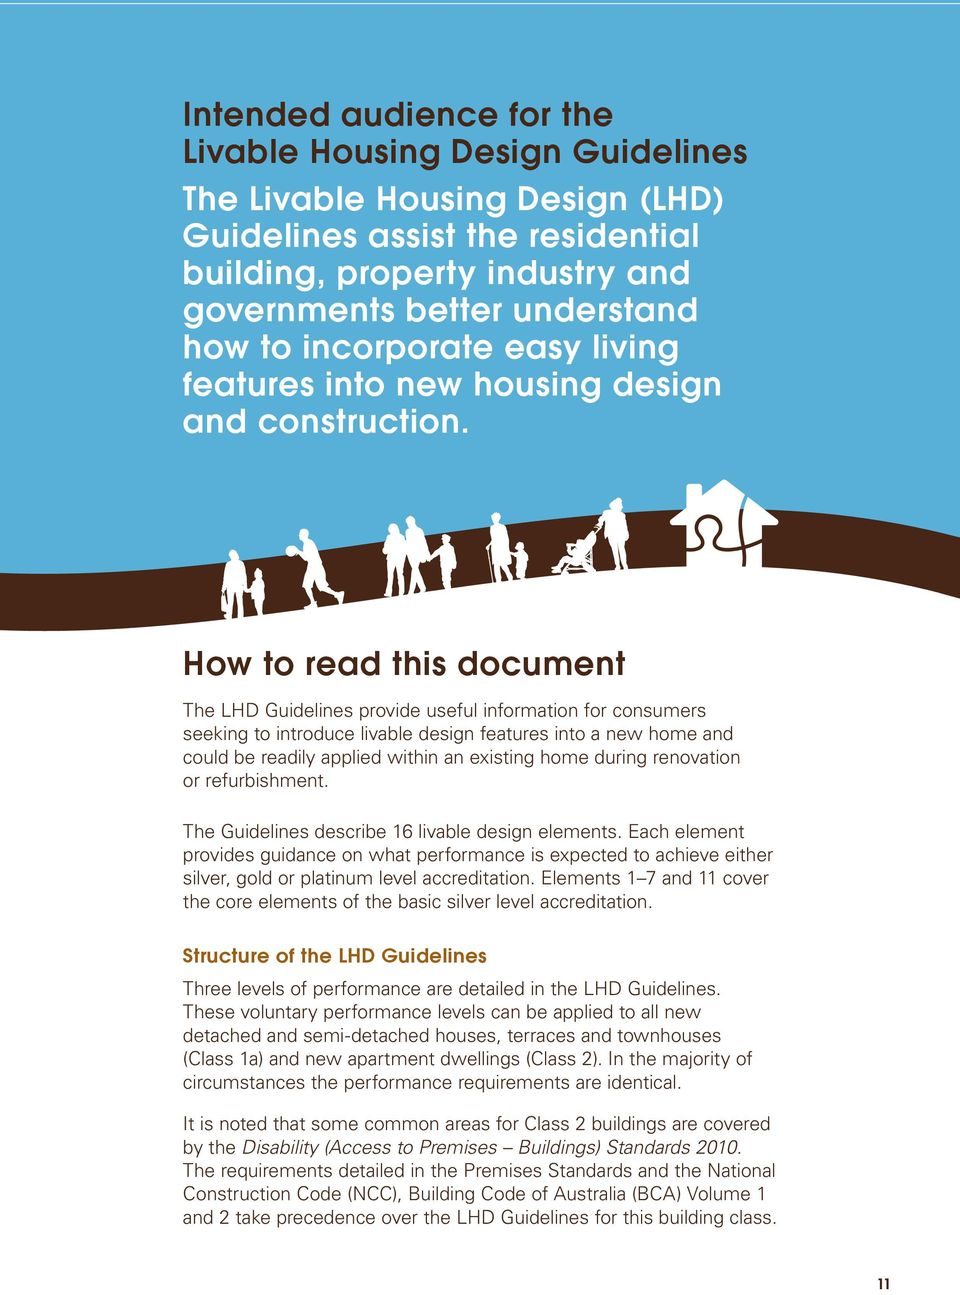 How to read this document The LHD Guidelines provide useful information for consumers seeking to introduce livable design features into a new home and could be readily applied within an existing home